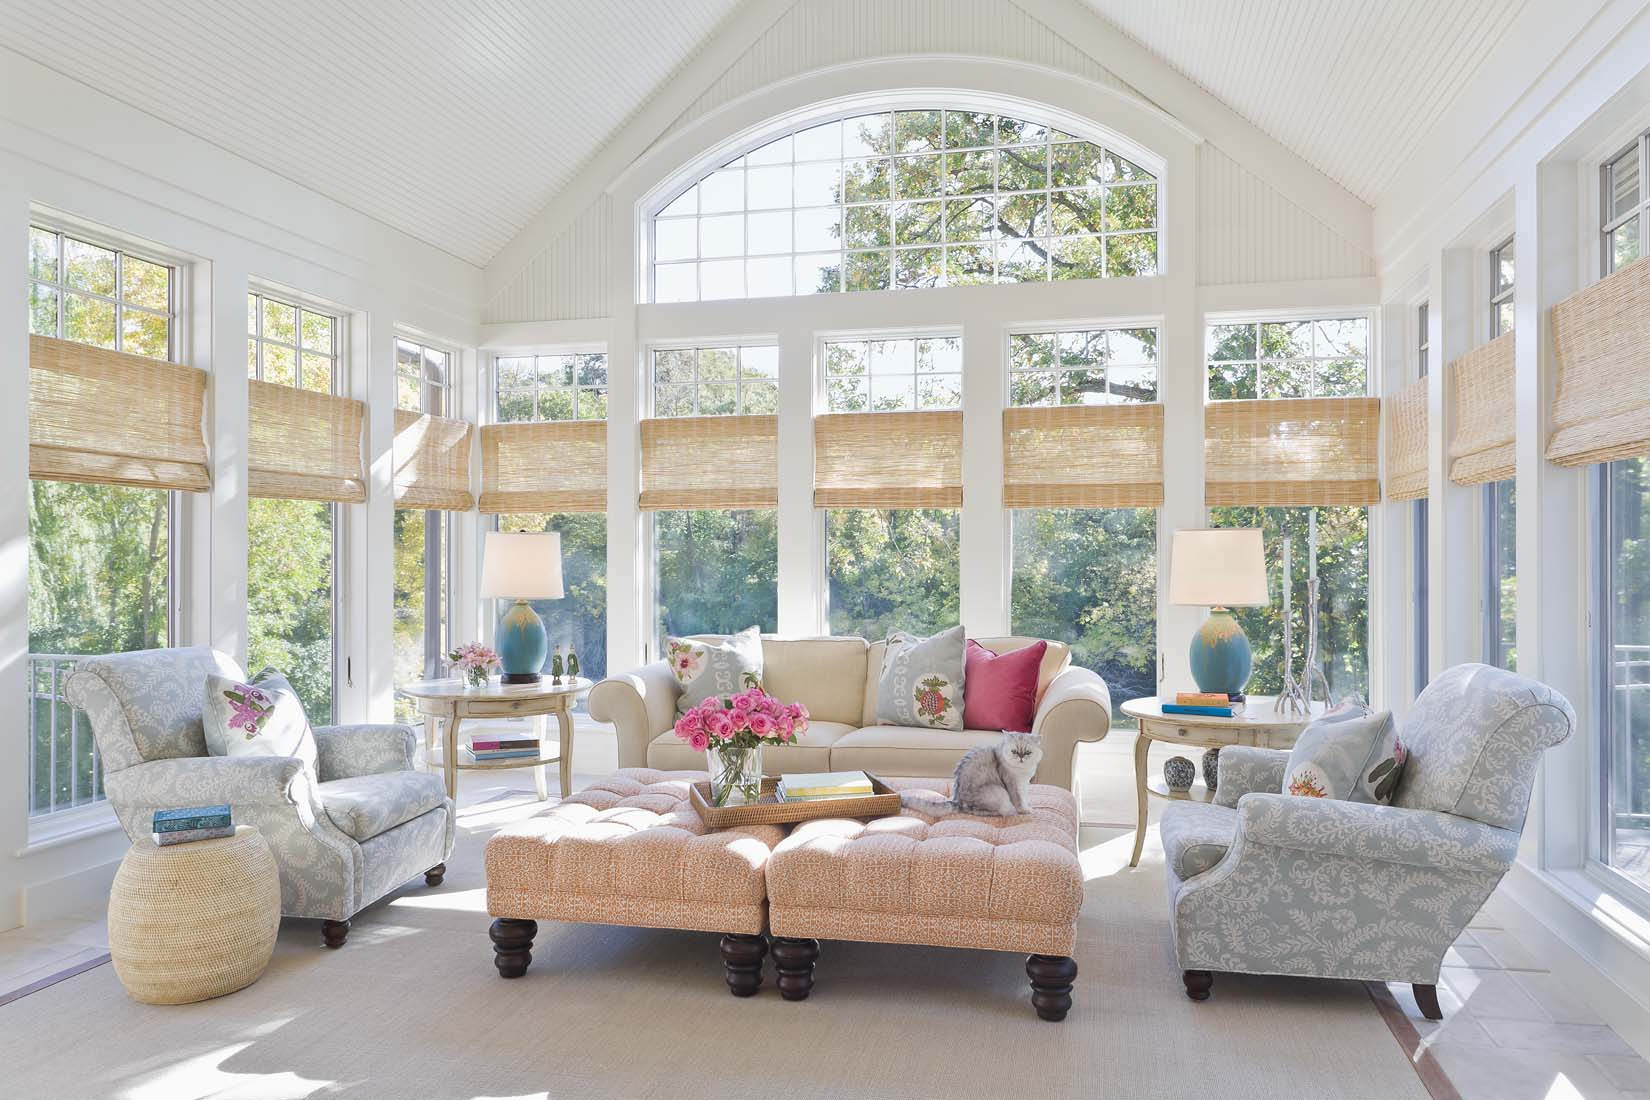 Amazing Beautiful Sunrooms Of White Sunroom With Pastel Colors And